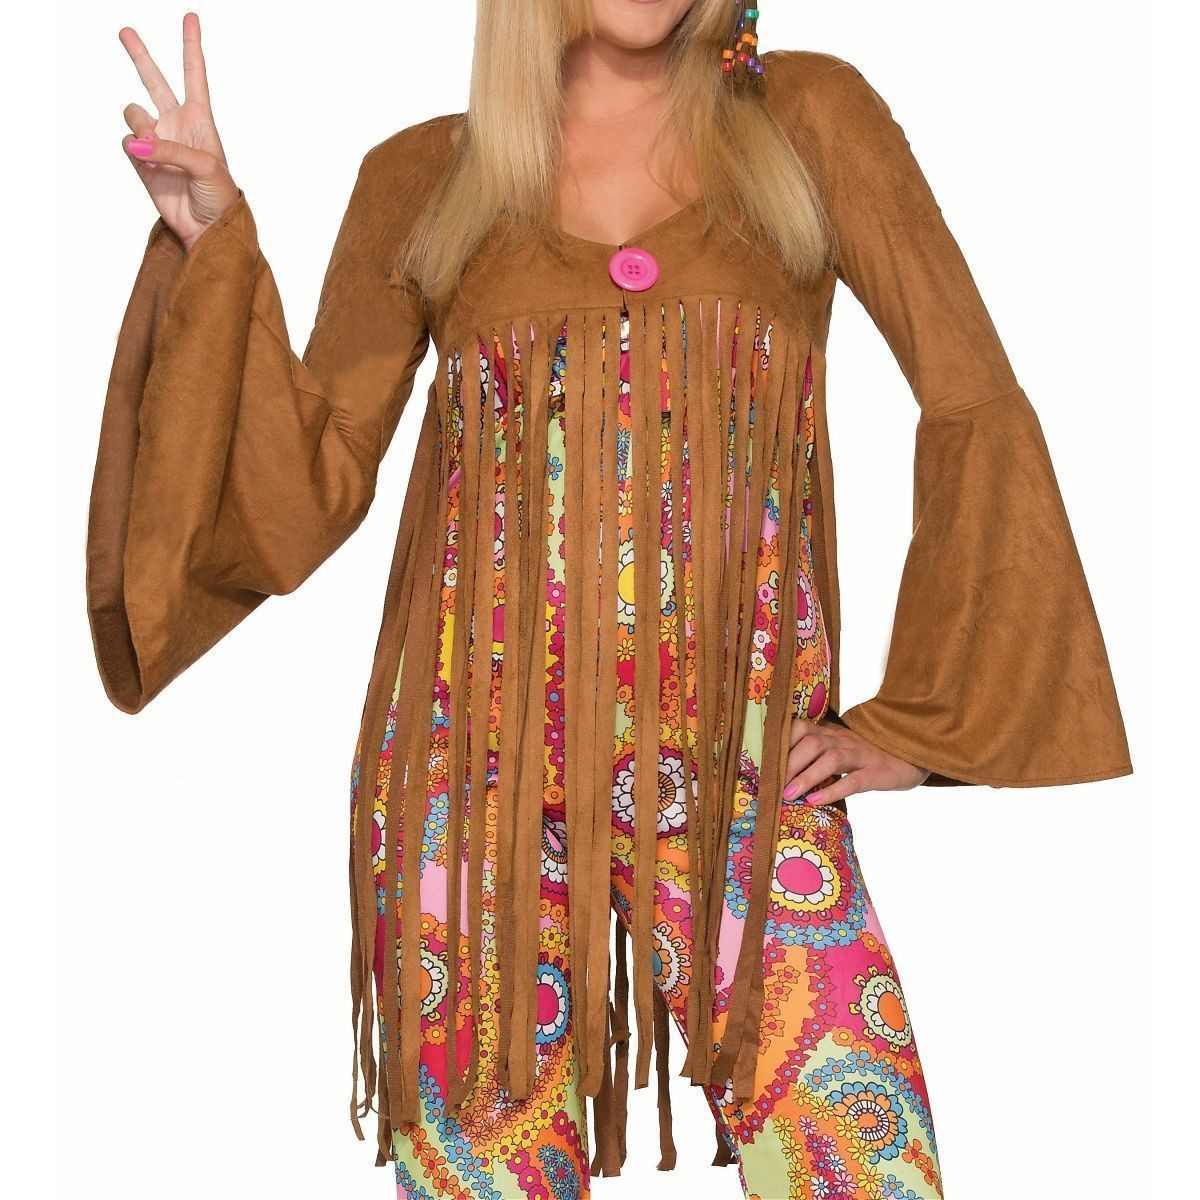 groovy sweetie hippie adult costume fringe vest jumpsuit flower